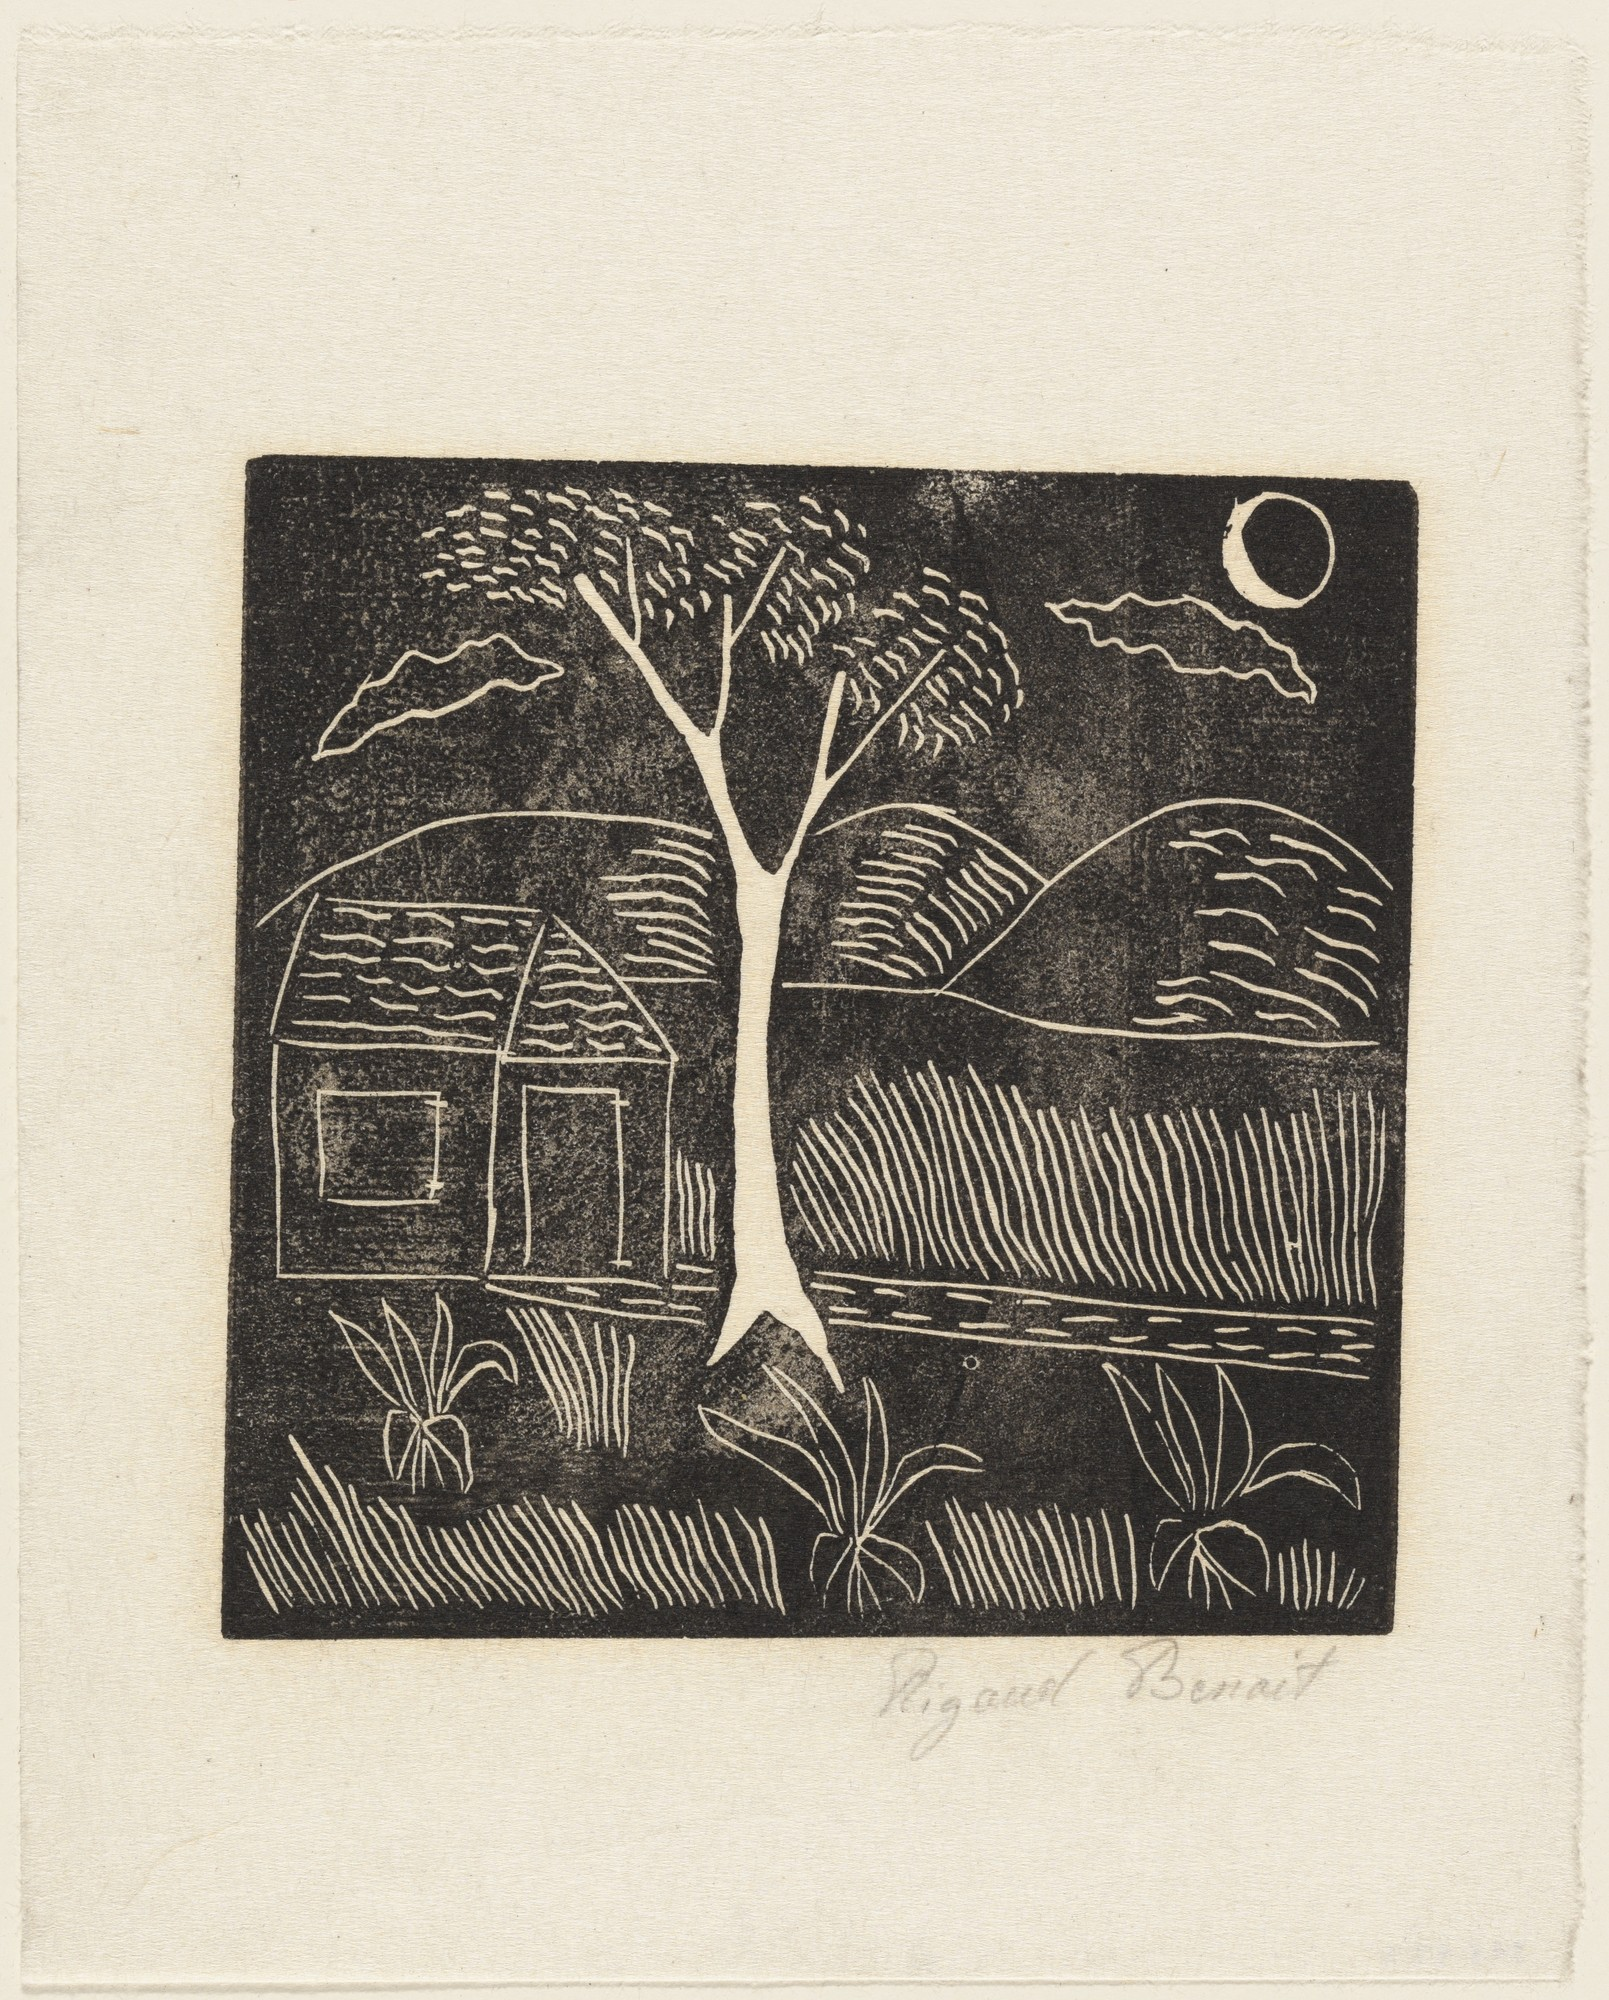 Untitled Woodcut, 1947